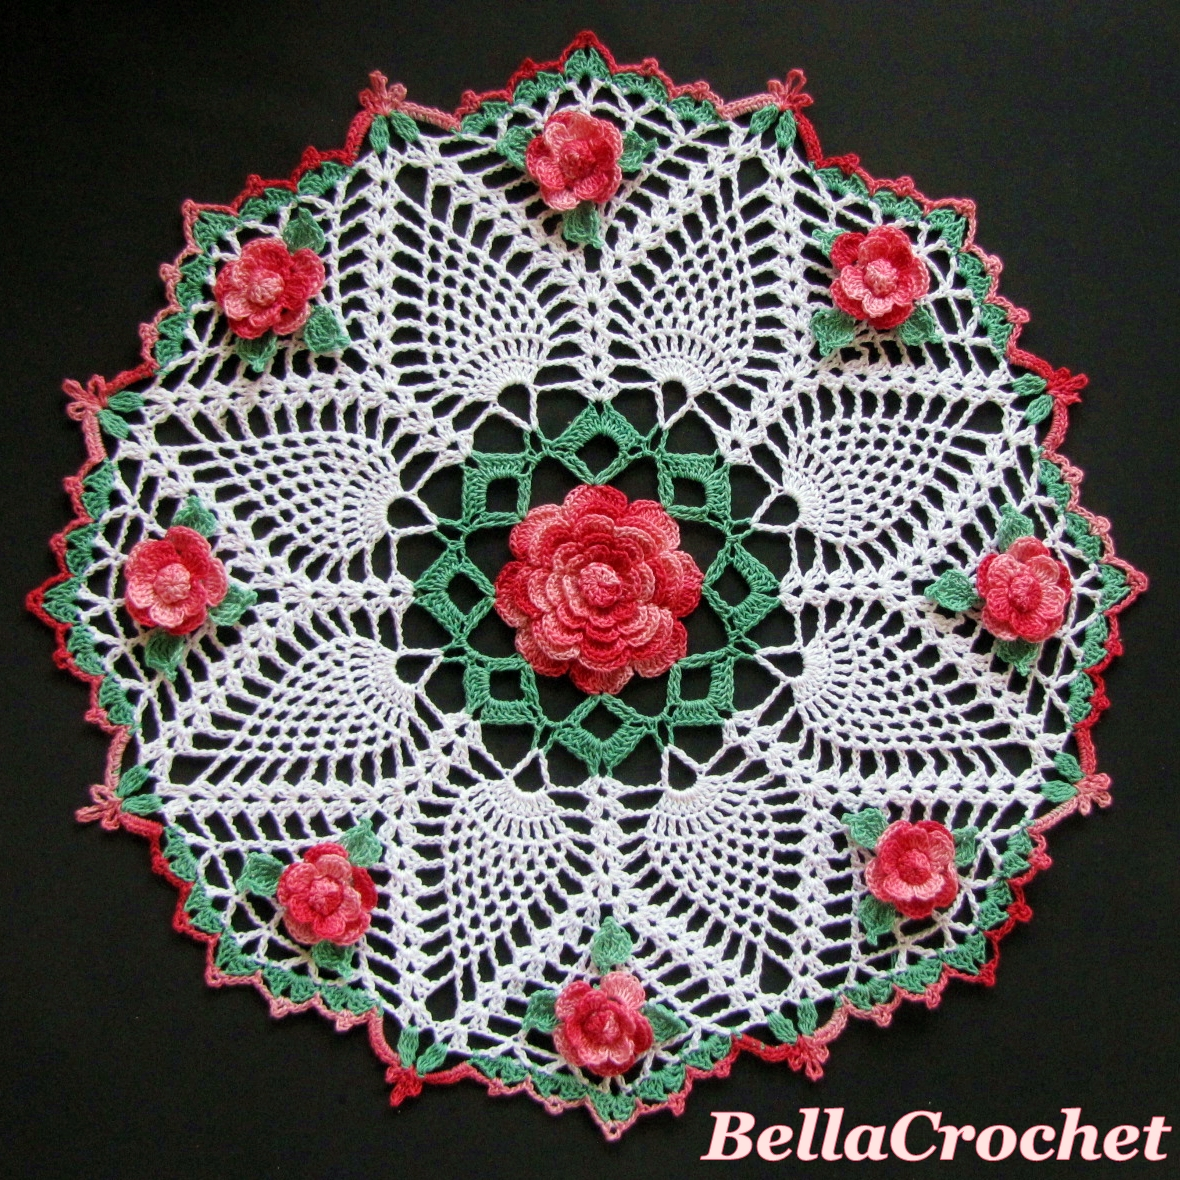 bellacrochet dorothy u0027s roses doily a free crochet pattern for you